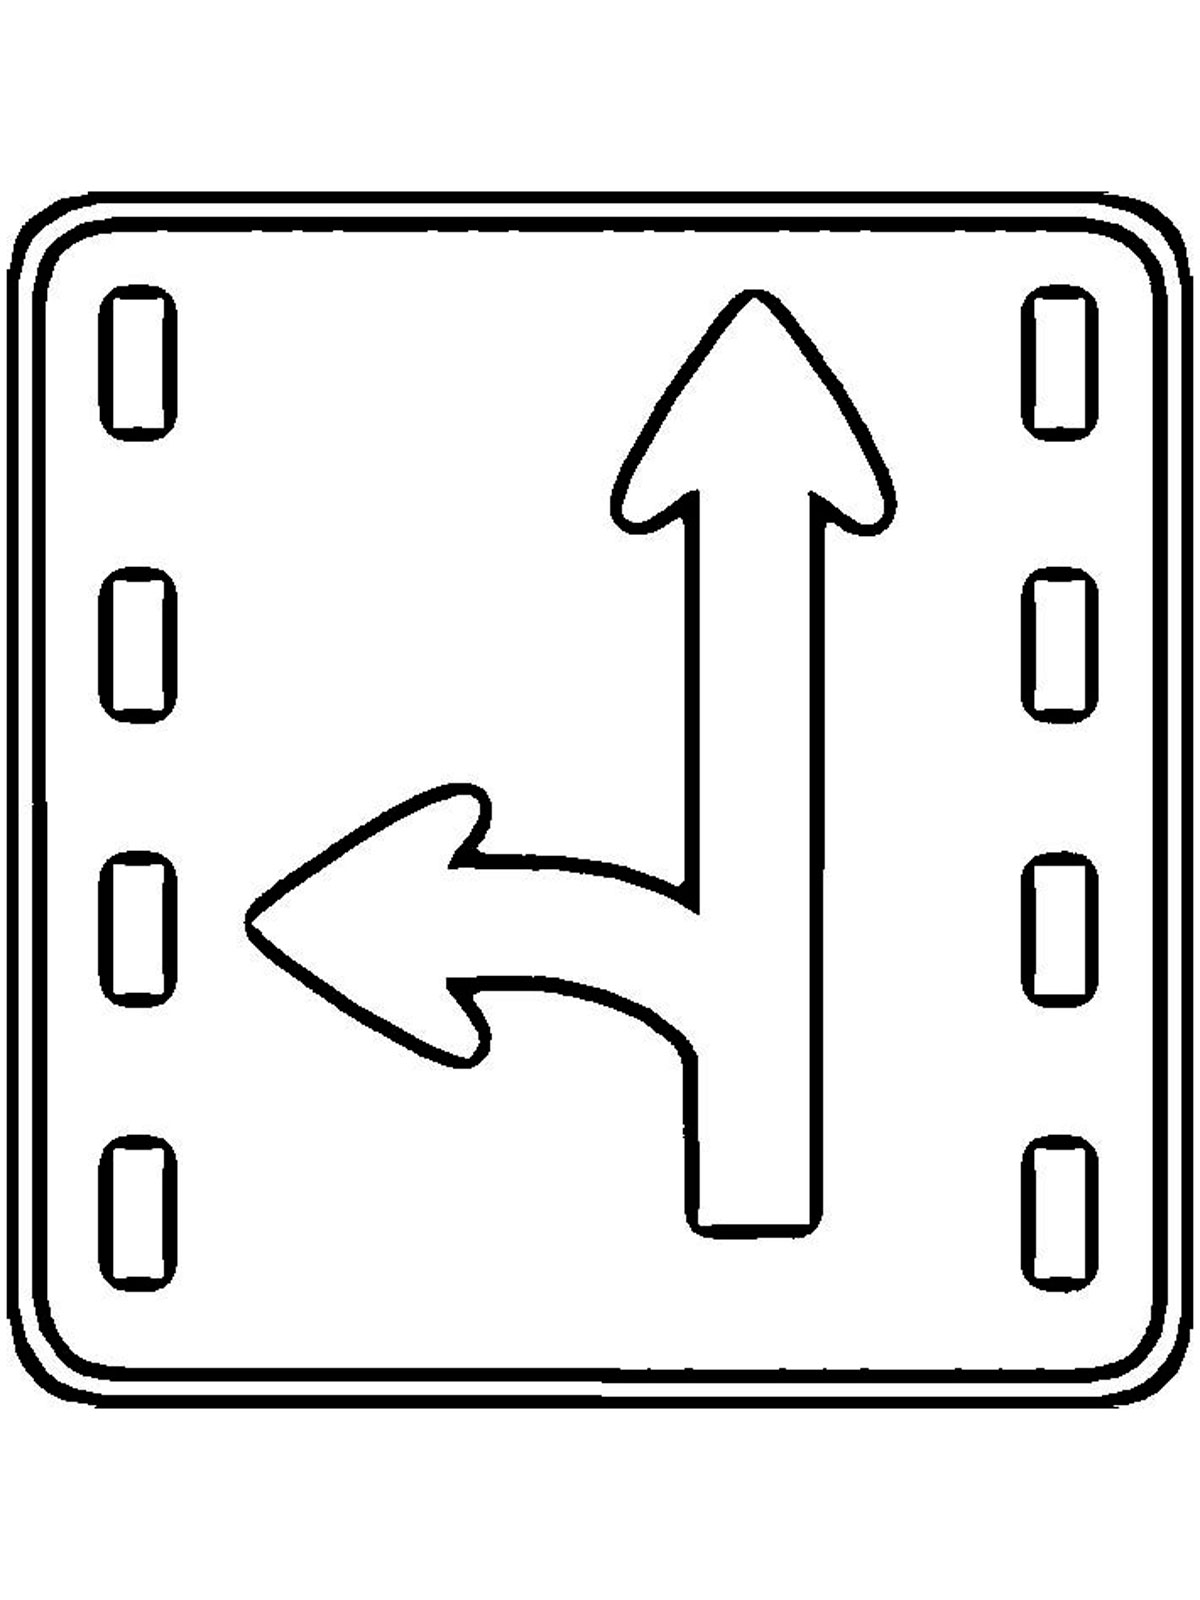 Road Signs Coloring Pages Traffic Sign Coloring Pages Gallery Of Road Sign Drawing at Getdrawings Collection